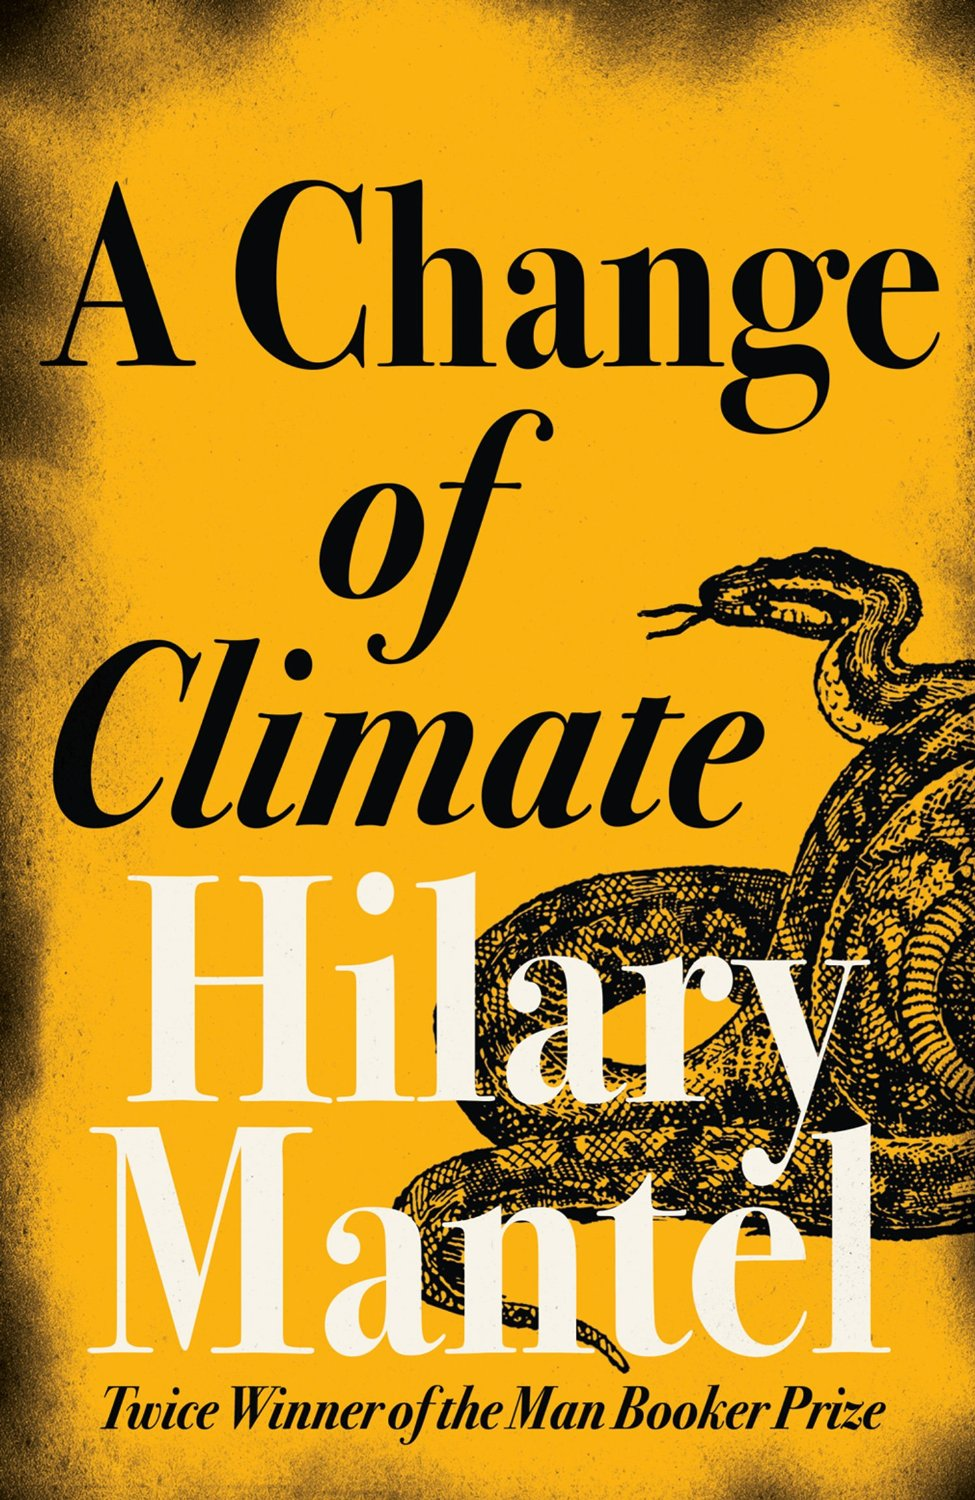 When is hilary mantel's next book out